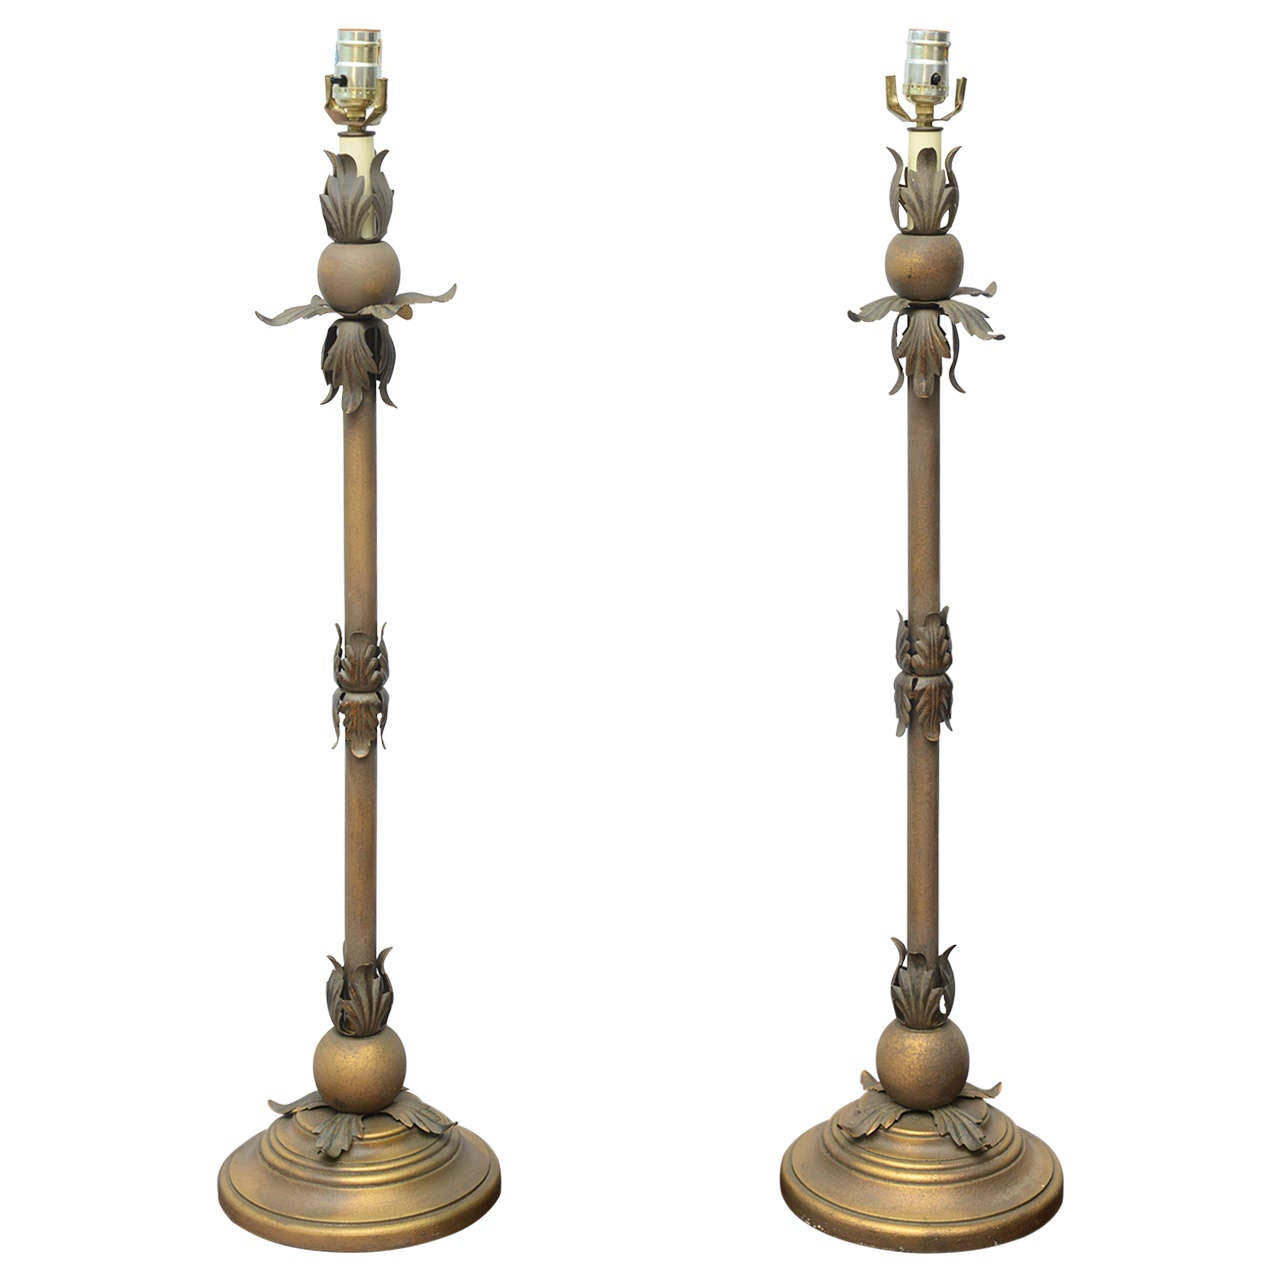 tall gold table lamps 1970s usa for sale at 1stdibs